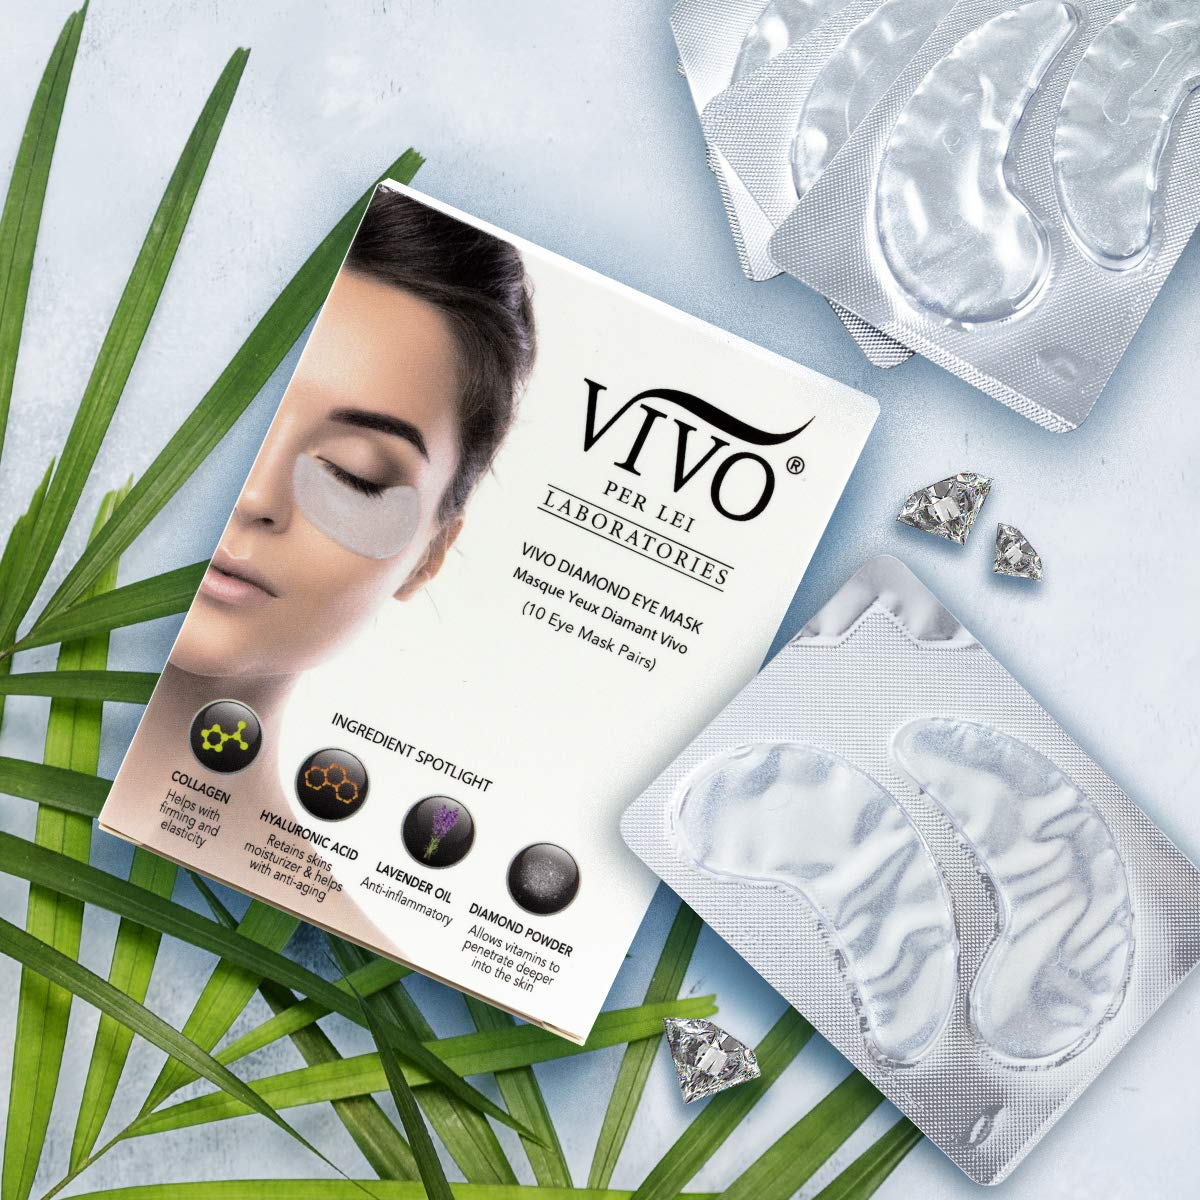 Vivo Per Lei Diamond Under Eye Patches | Collagen Eye Mask & Dark Circles Mask | Let Your Eyes Talk with this Anti Aging Under Eyes Bag Treatment | Collagen Eye Patch with Diamond Powder | Set of 10 by Vivo Per Lei (Image #4)